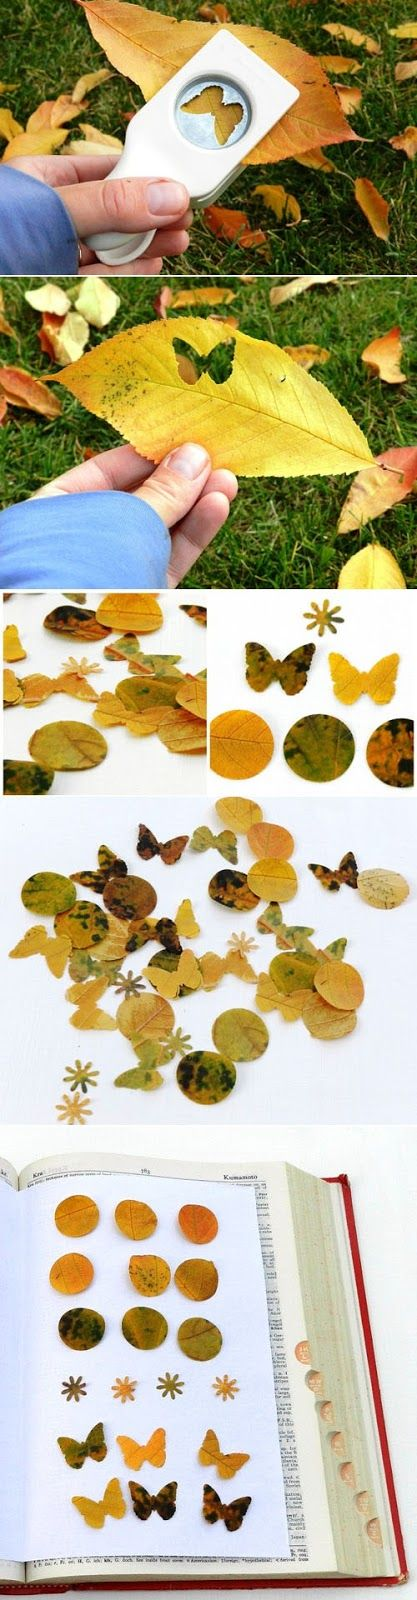 Leaf cut outs. DIY herfst- diy autumn